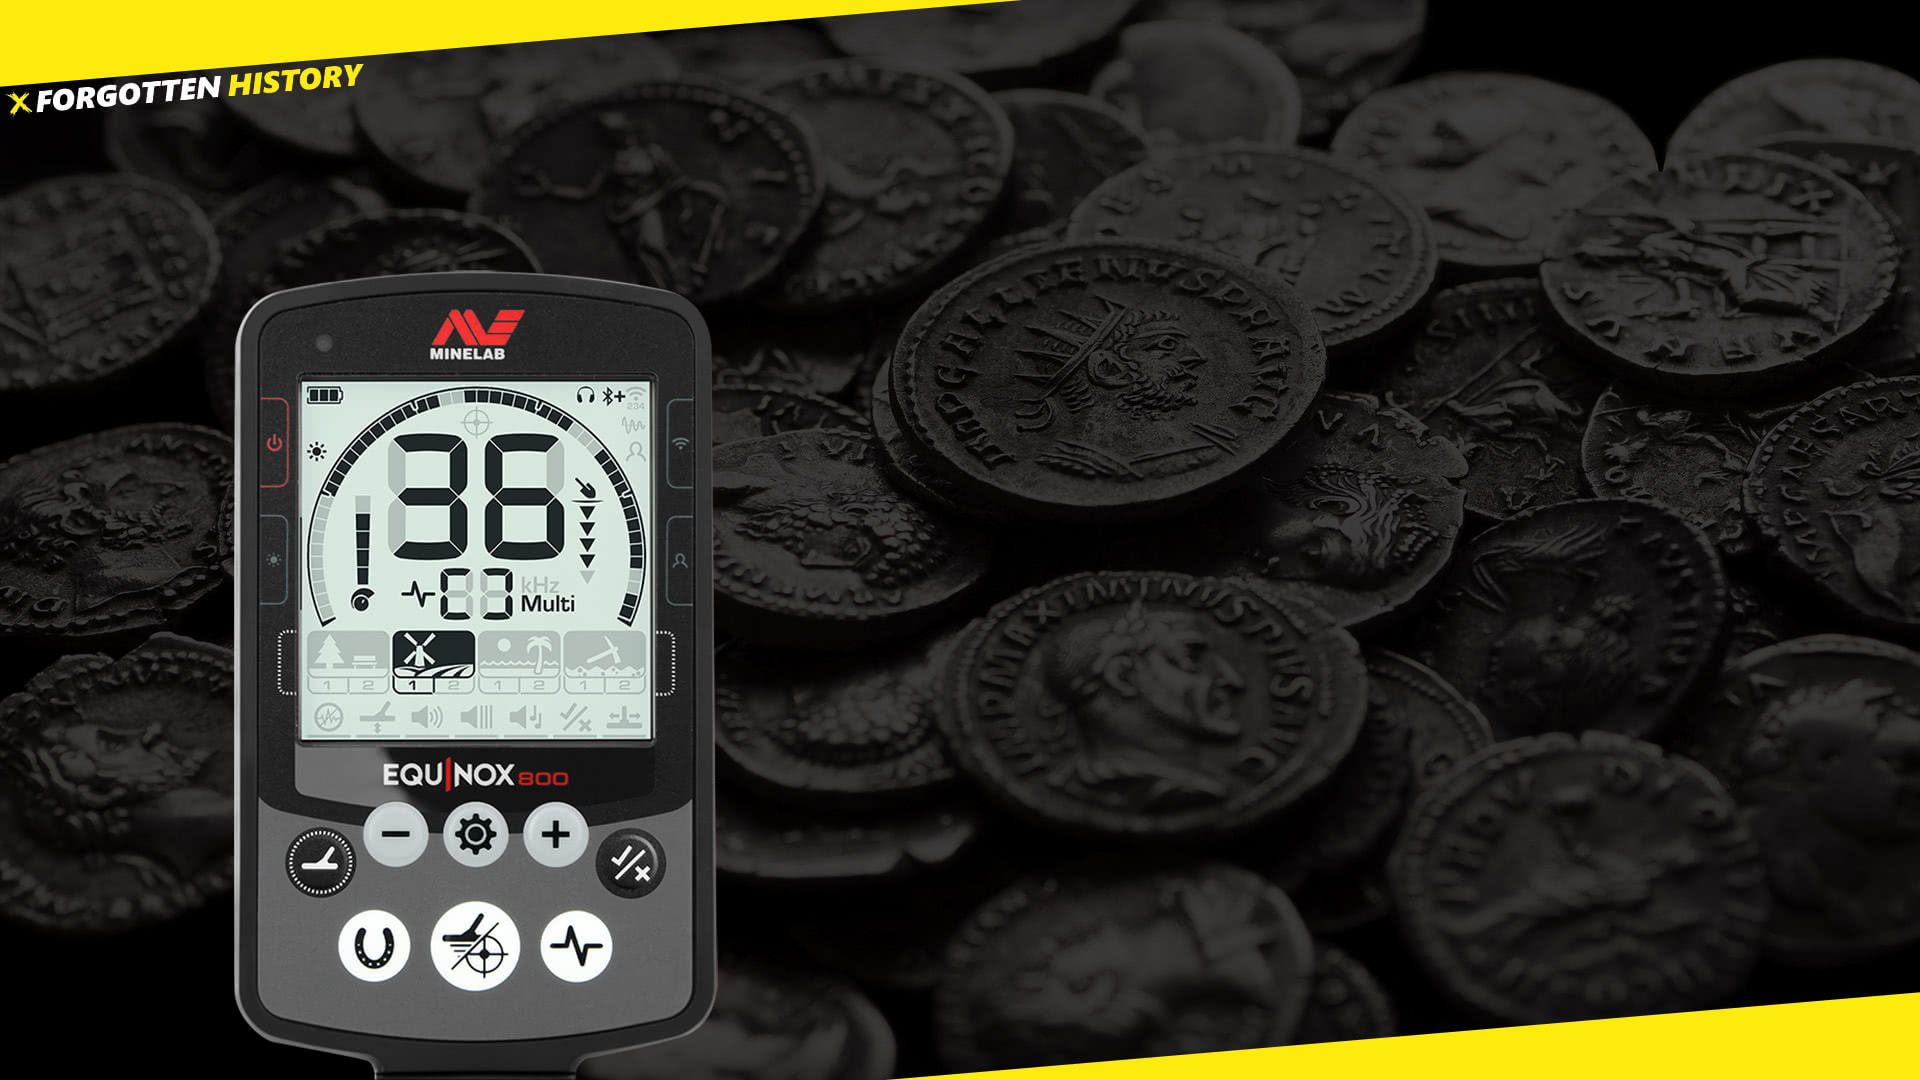 Minelab Equinox Finds Ancient Coins Video